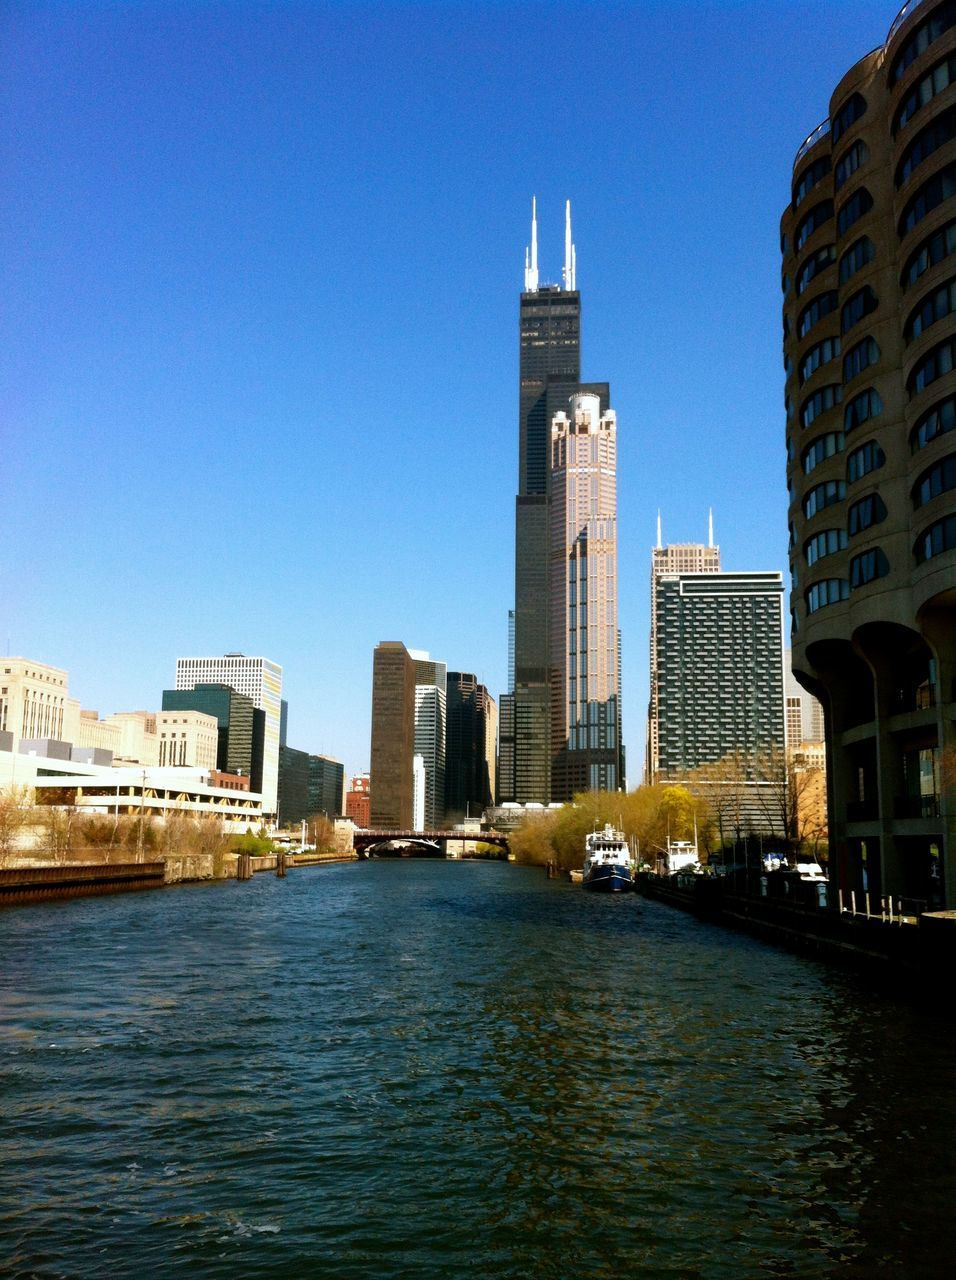 River Amidst Modern Buildings Against Clear Blue Sky